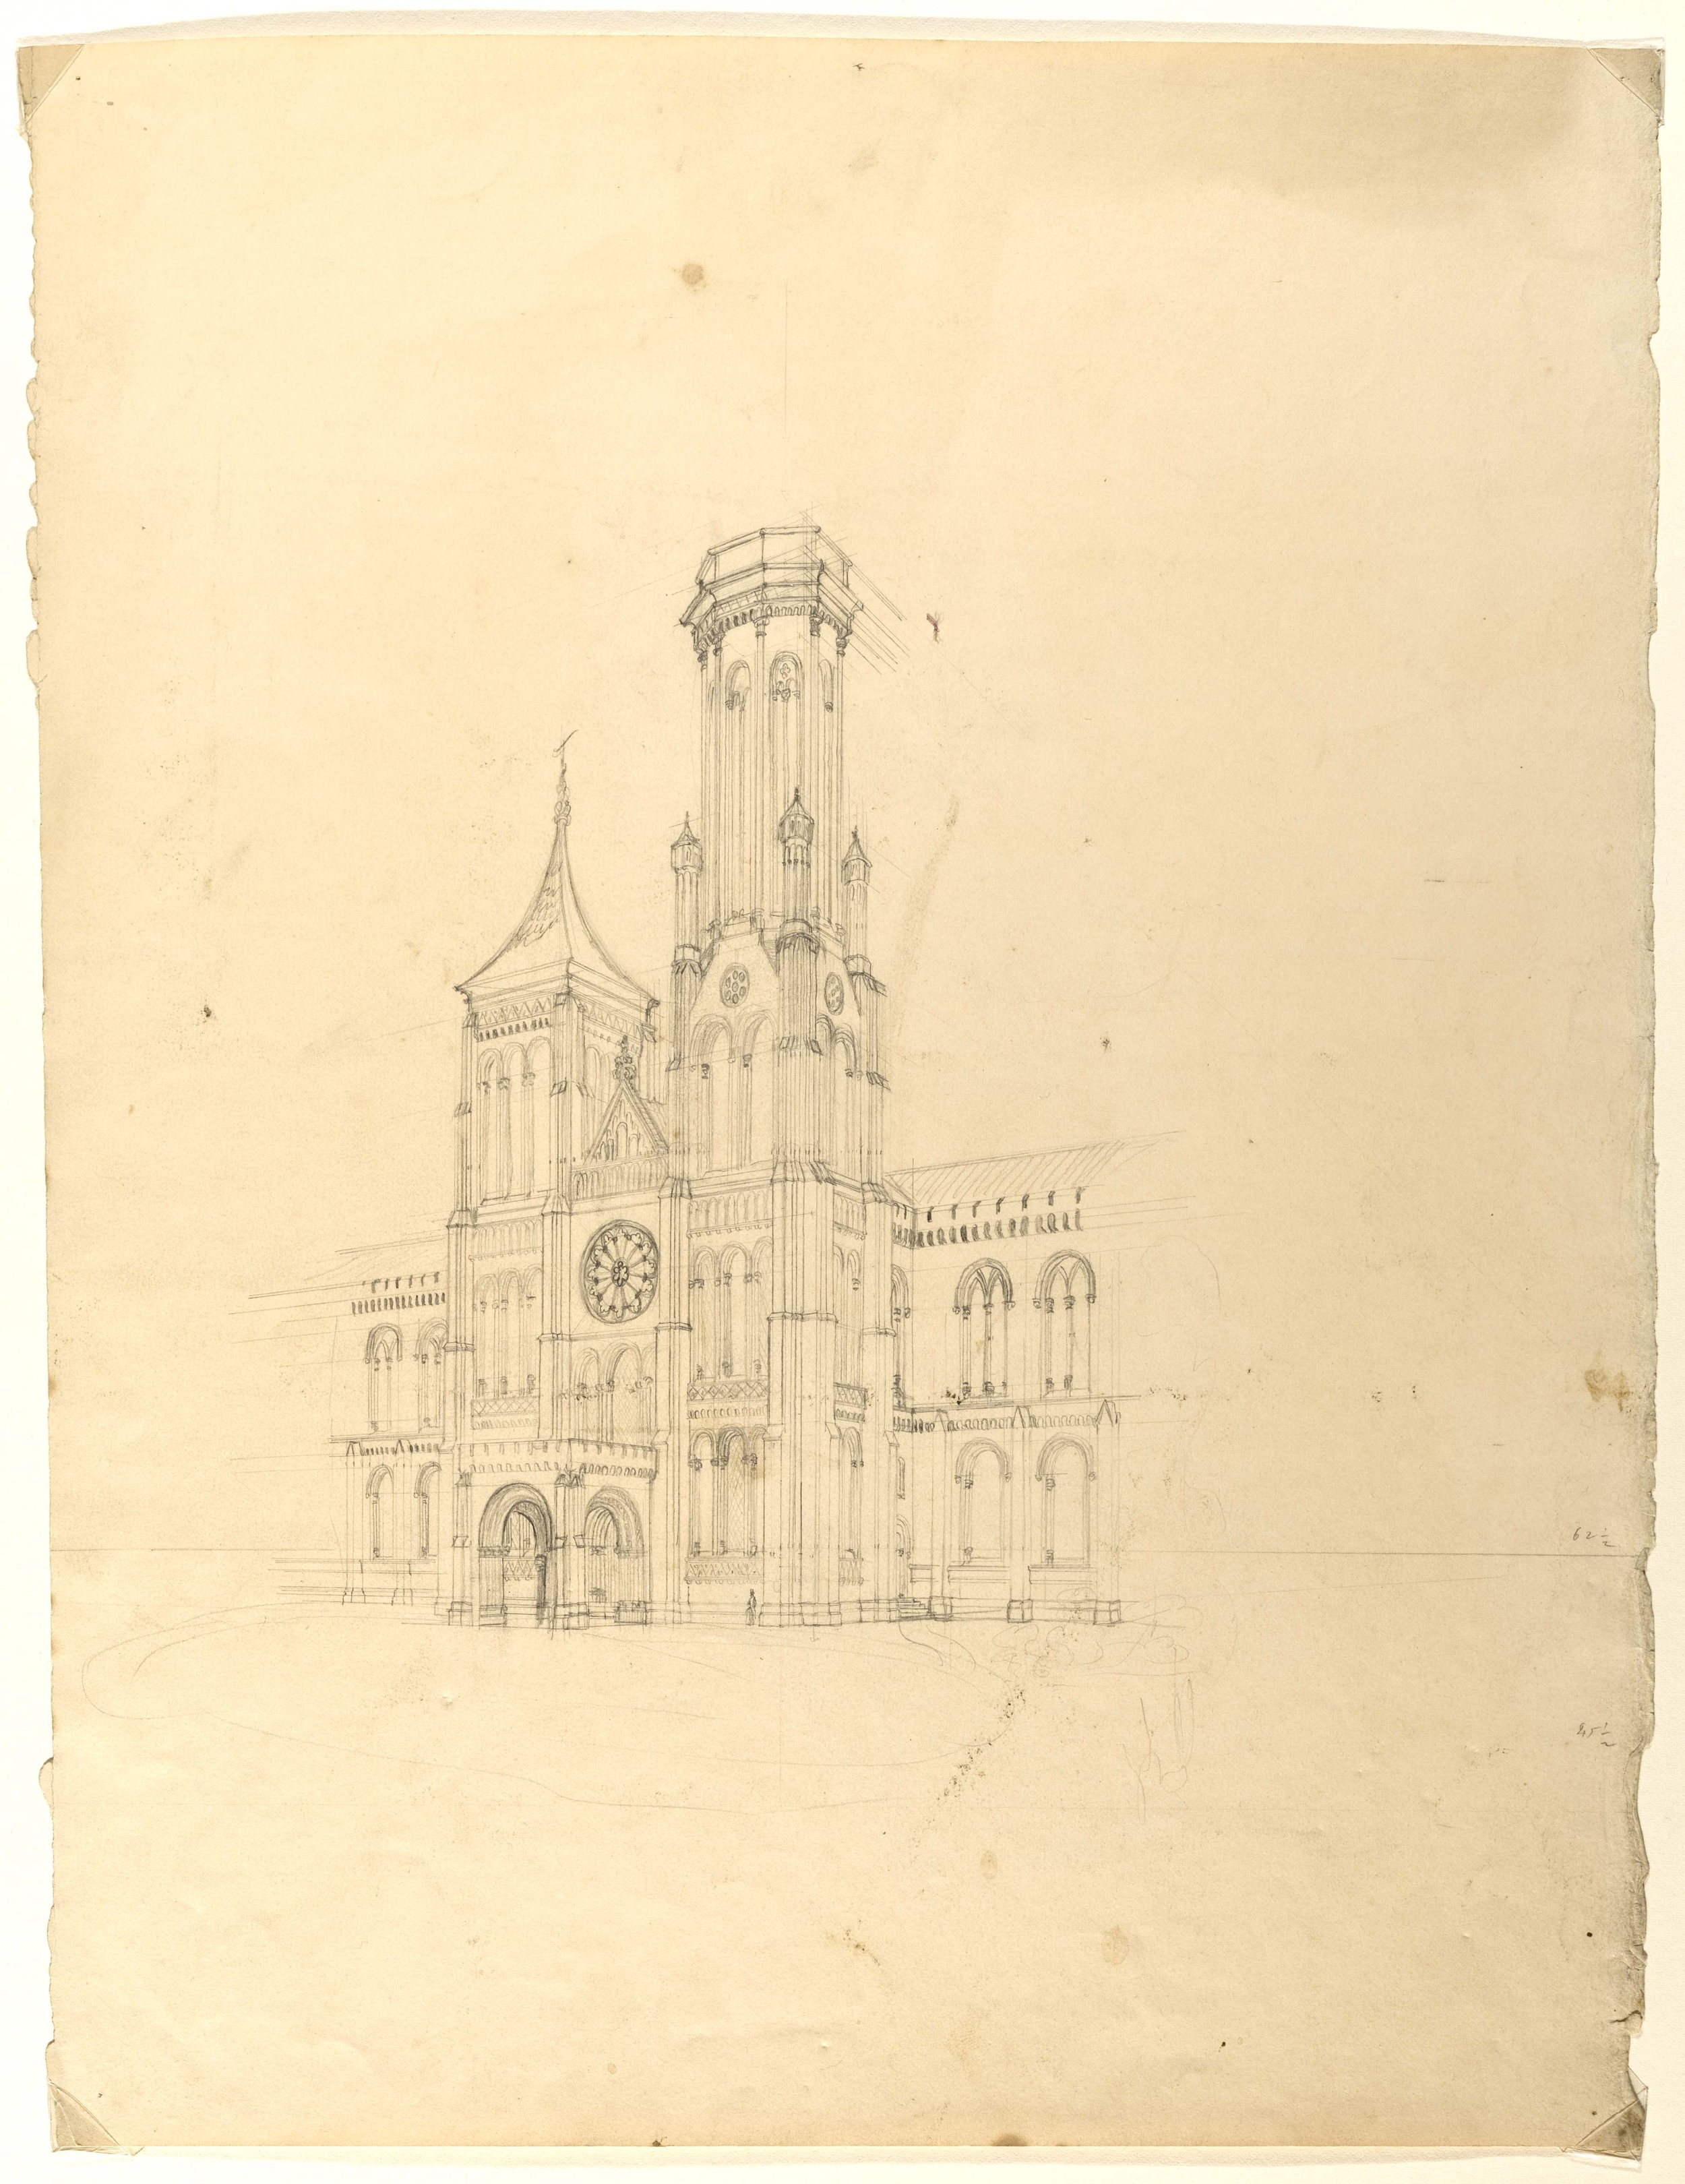 Renwick sketch of the north tower of the Smithsonian Castle, 1846, Smithsonian Institution Archives